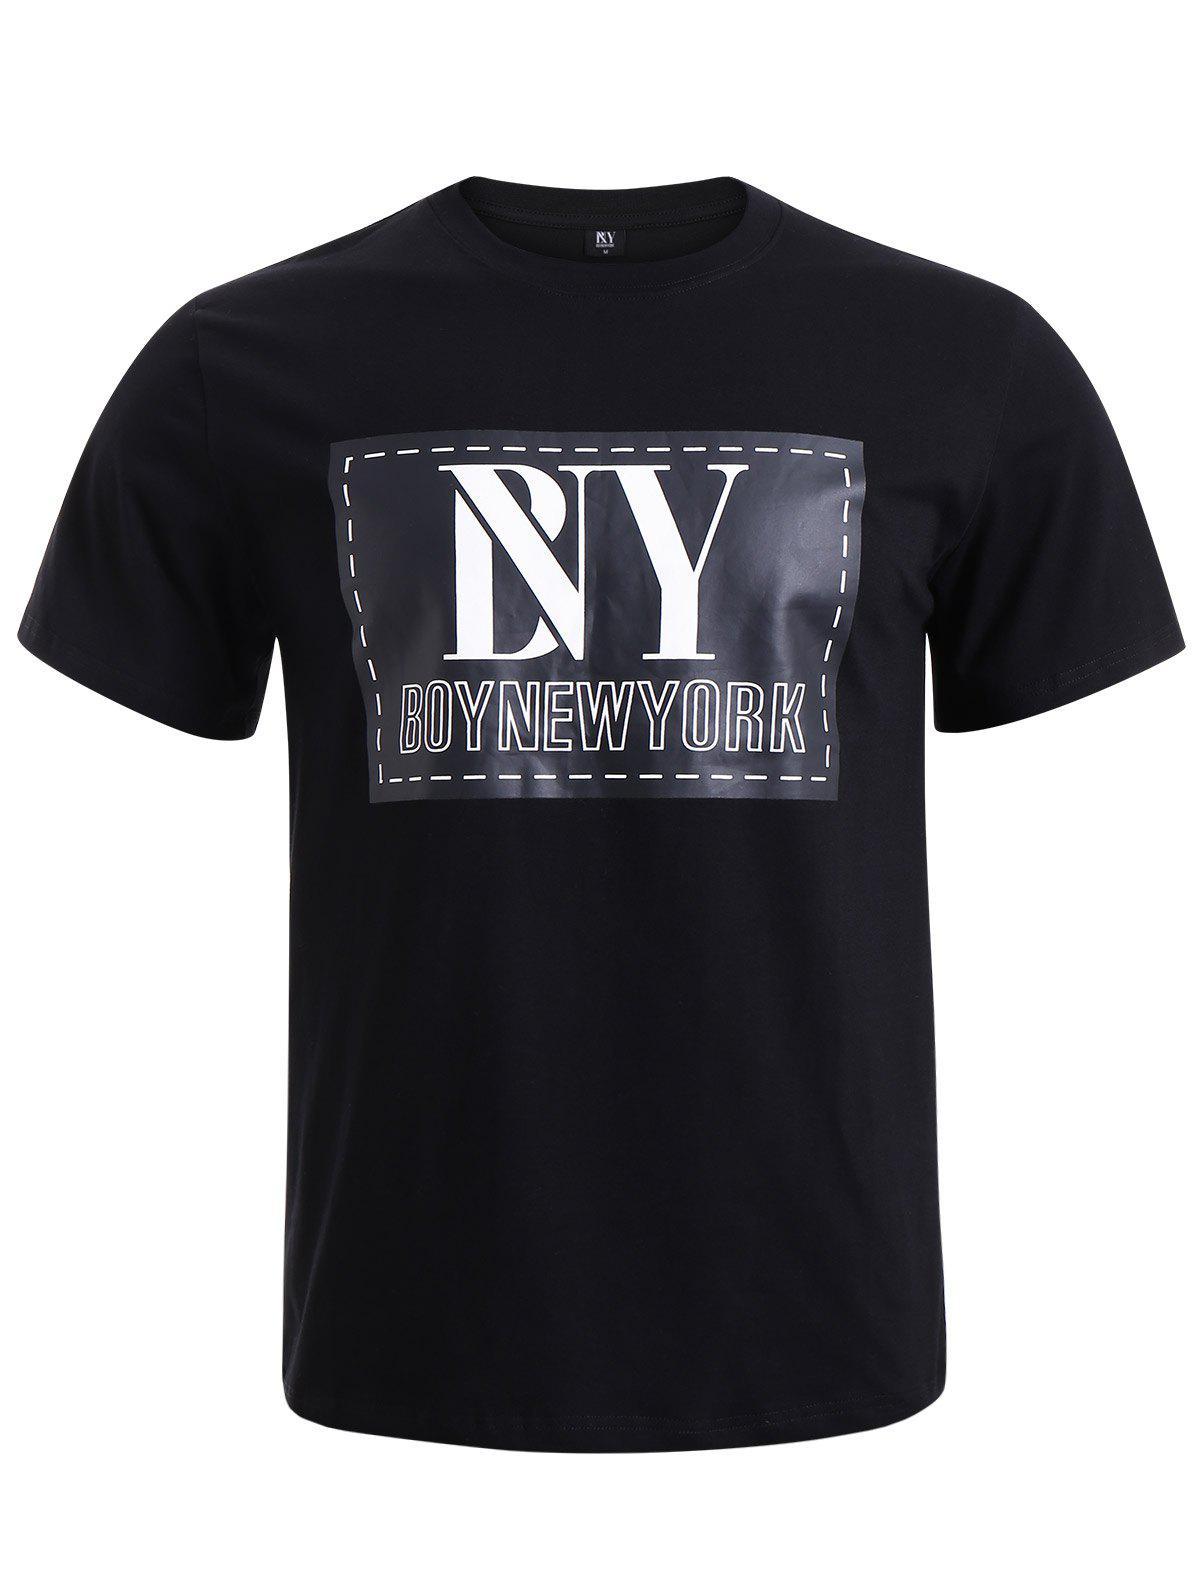 BoyNewYork Solid Color Applique Short Sleeves T-Shirt - BLACK XL